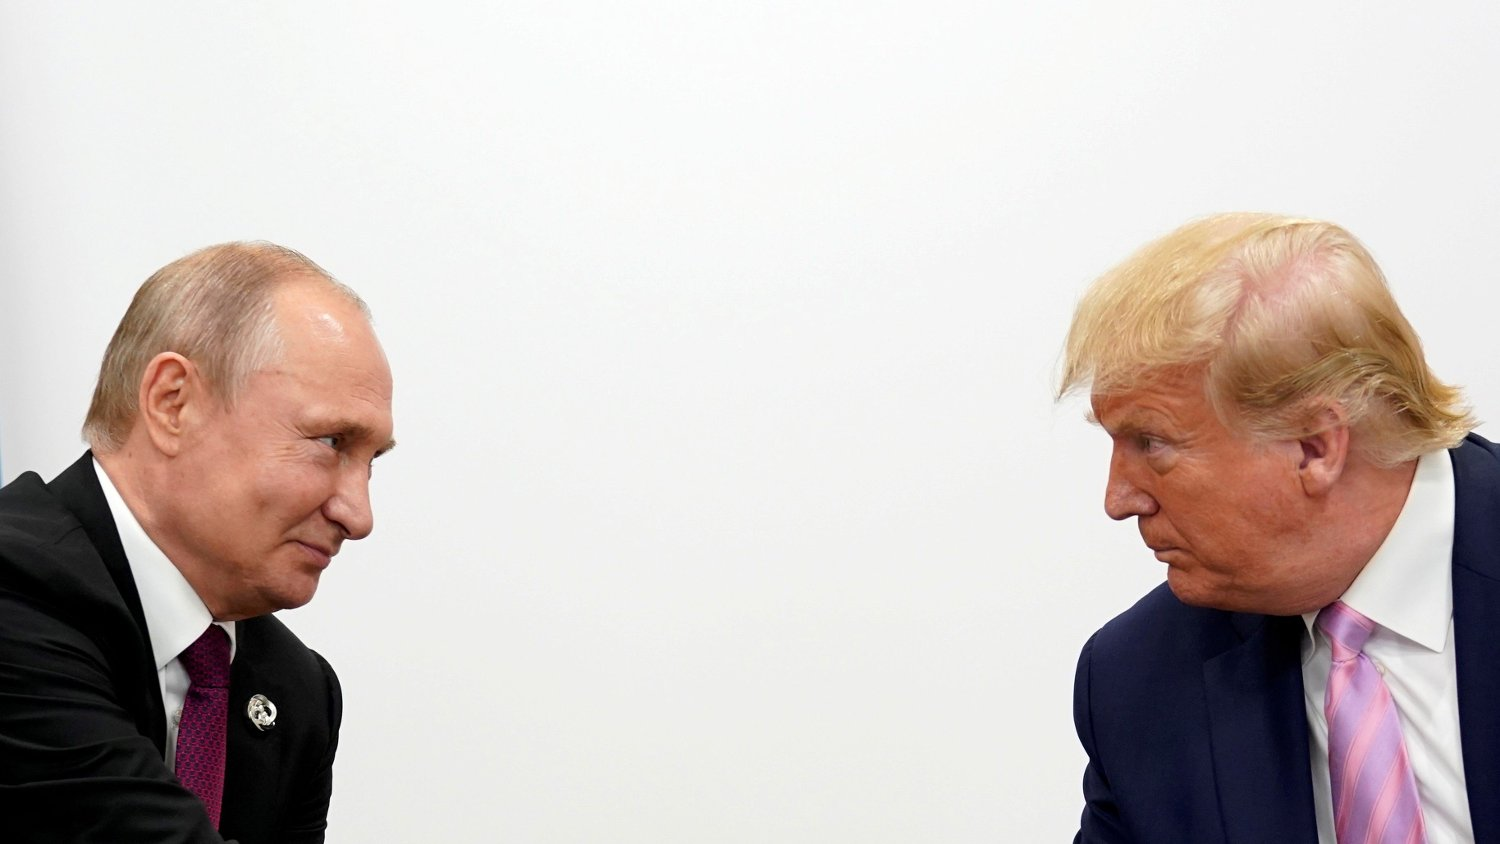 FILE PHOTO: U.S. President Donald Trump and Russian President Vladimir Putin hold a bilateral meeting at the G20 leaders summit in Osaka, Japan June 28, 2019. REUTERS/Kevin Lamarque/File Photo